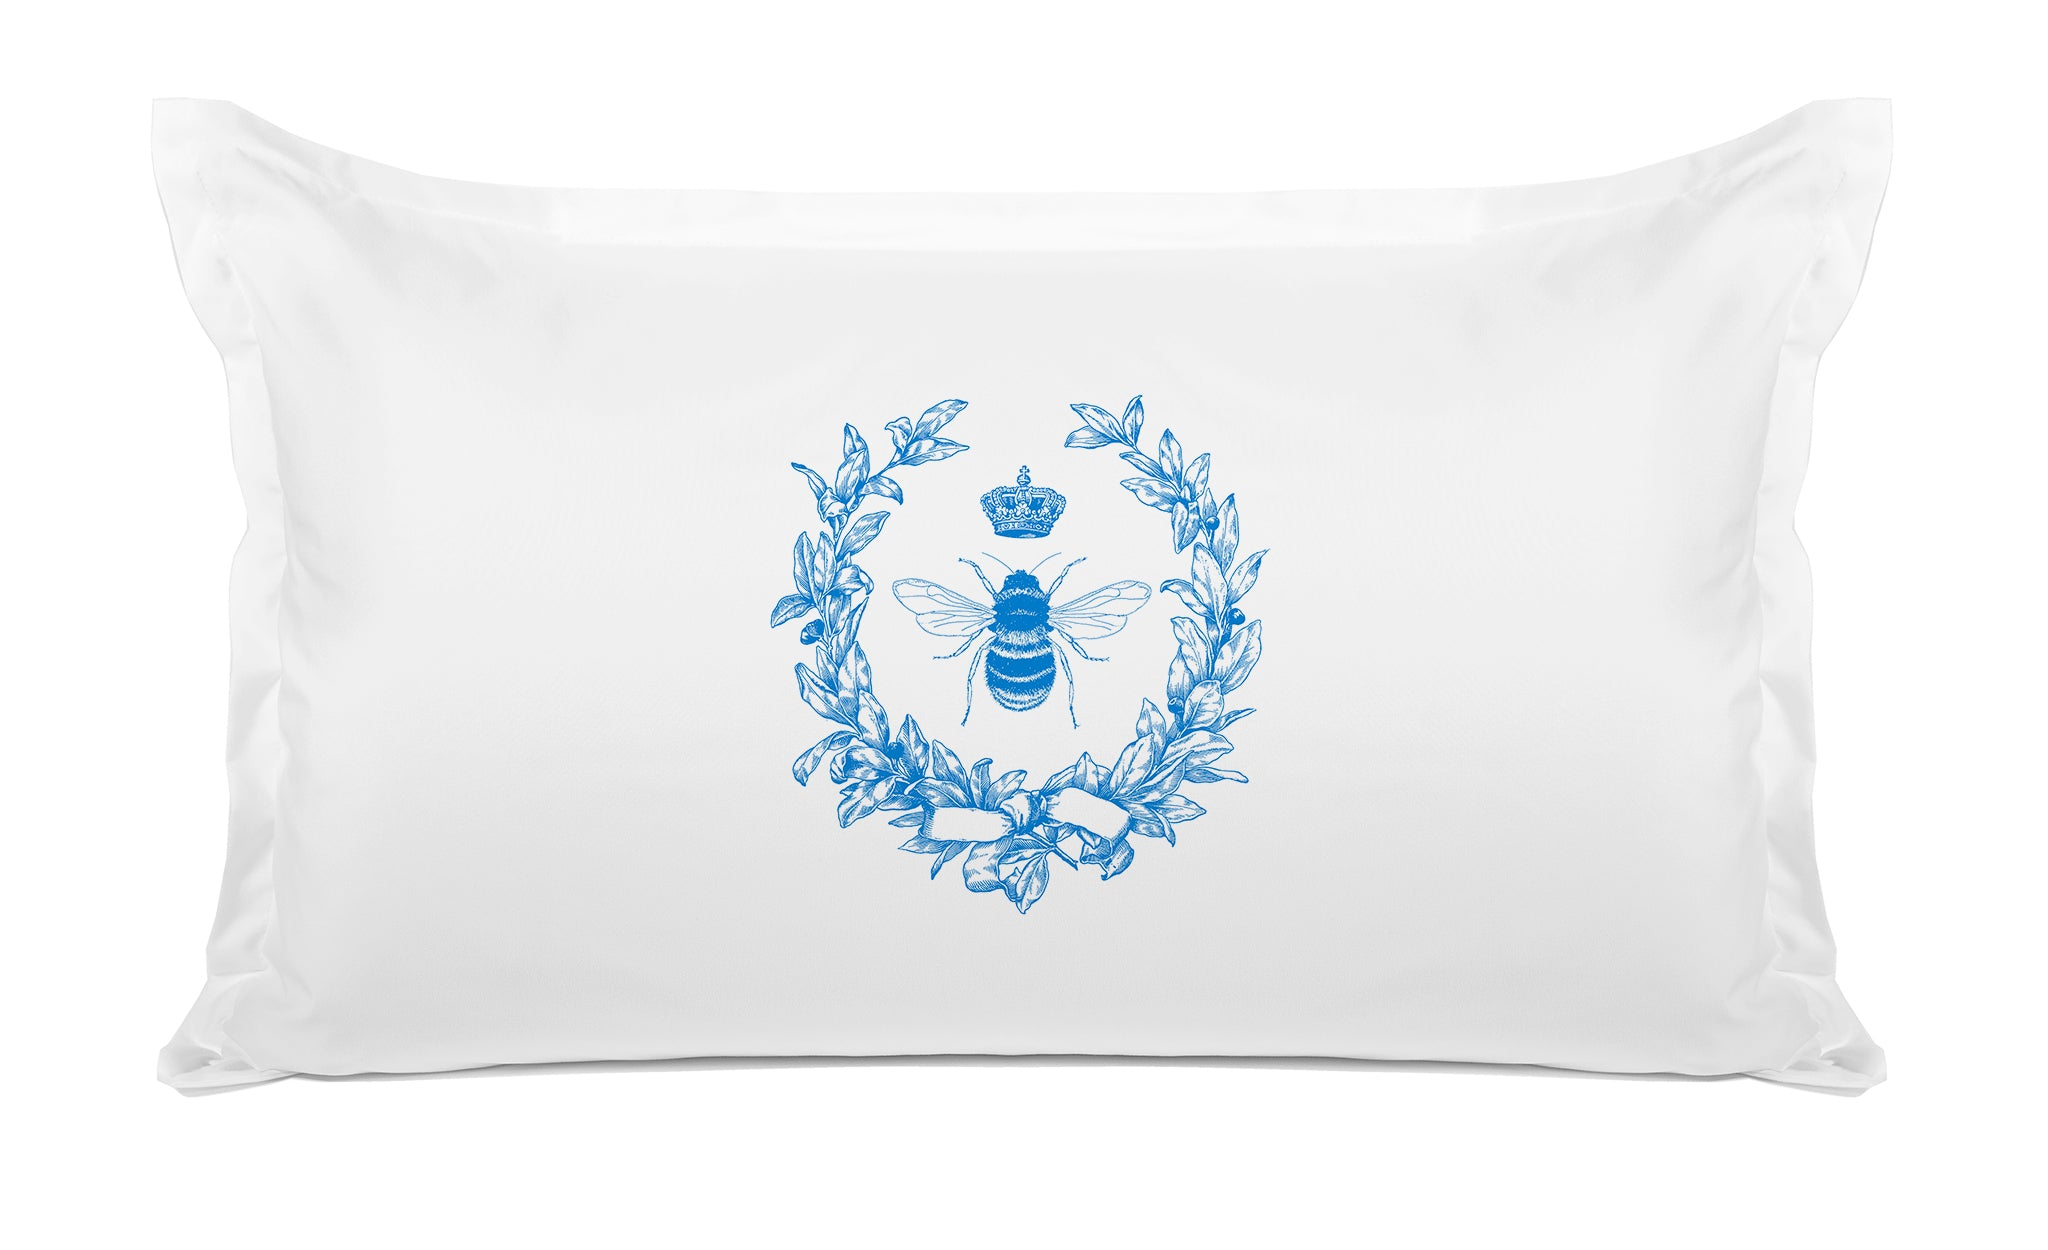 Napoleonic Bee Vintage Pillow case Di Lewis bedroom decor